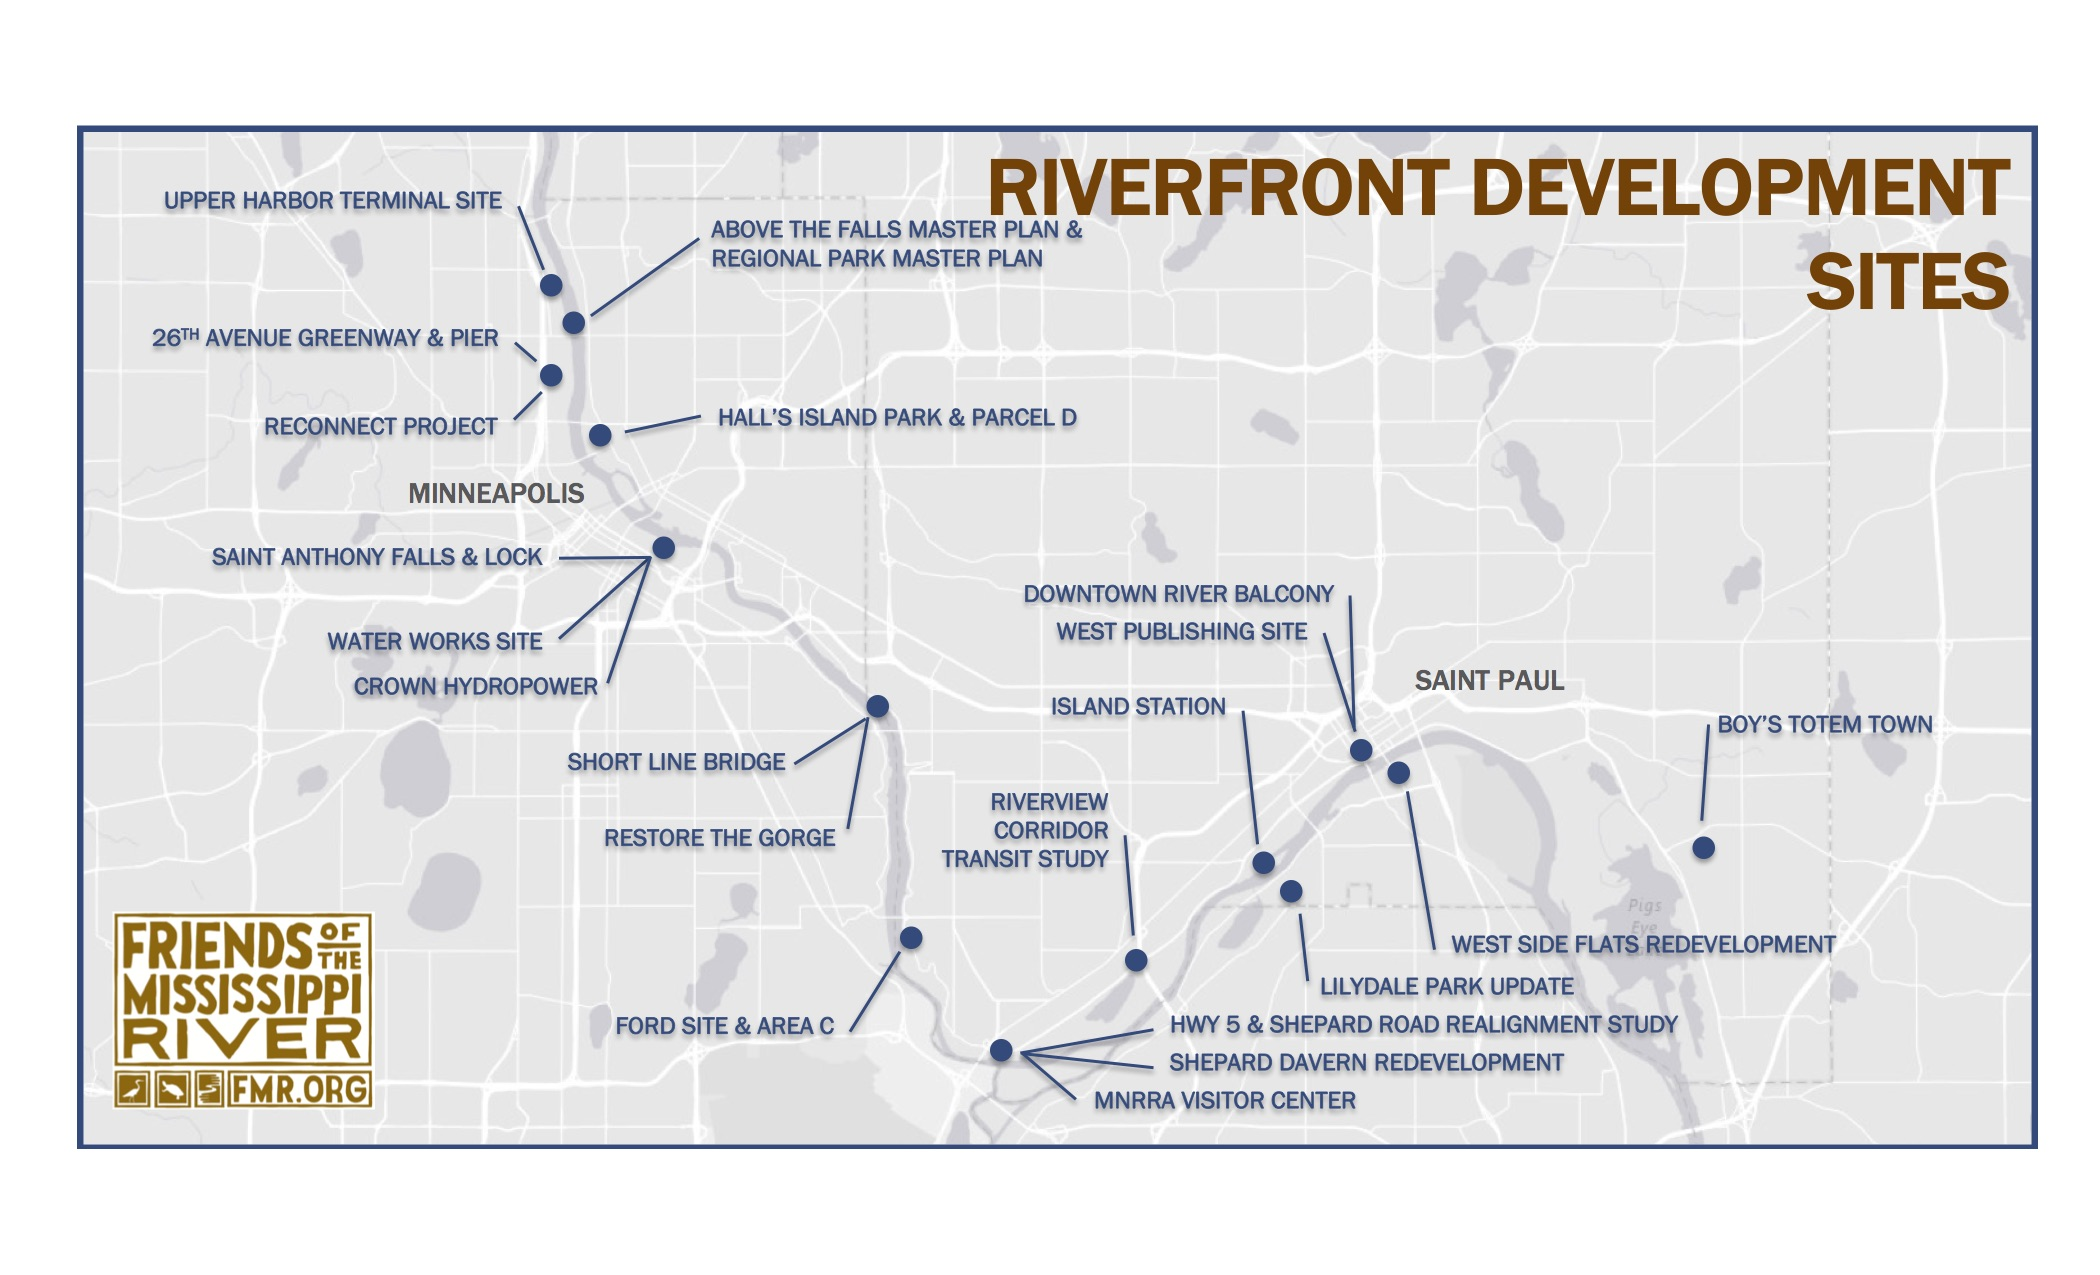 A map of FMR River advocacy sites in the Twin Cities